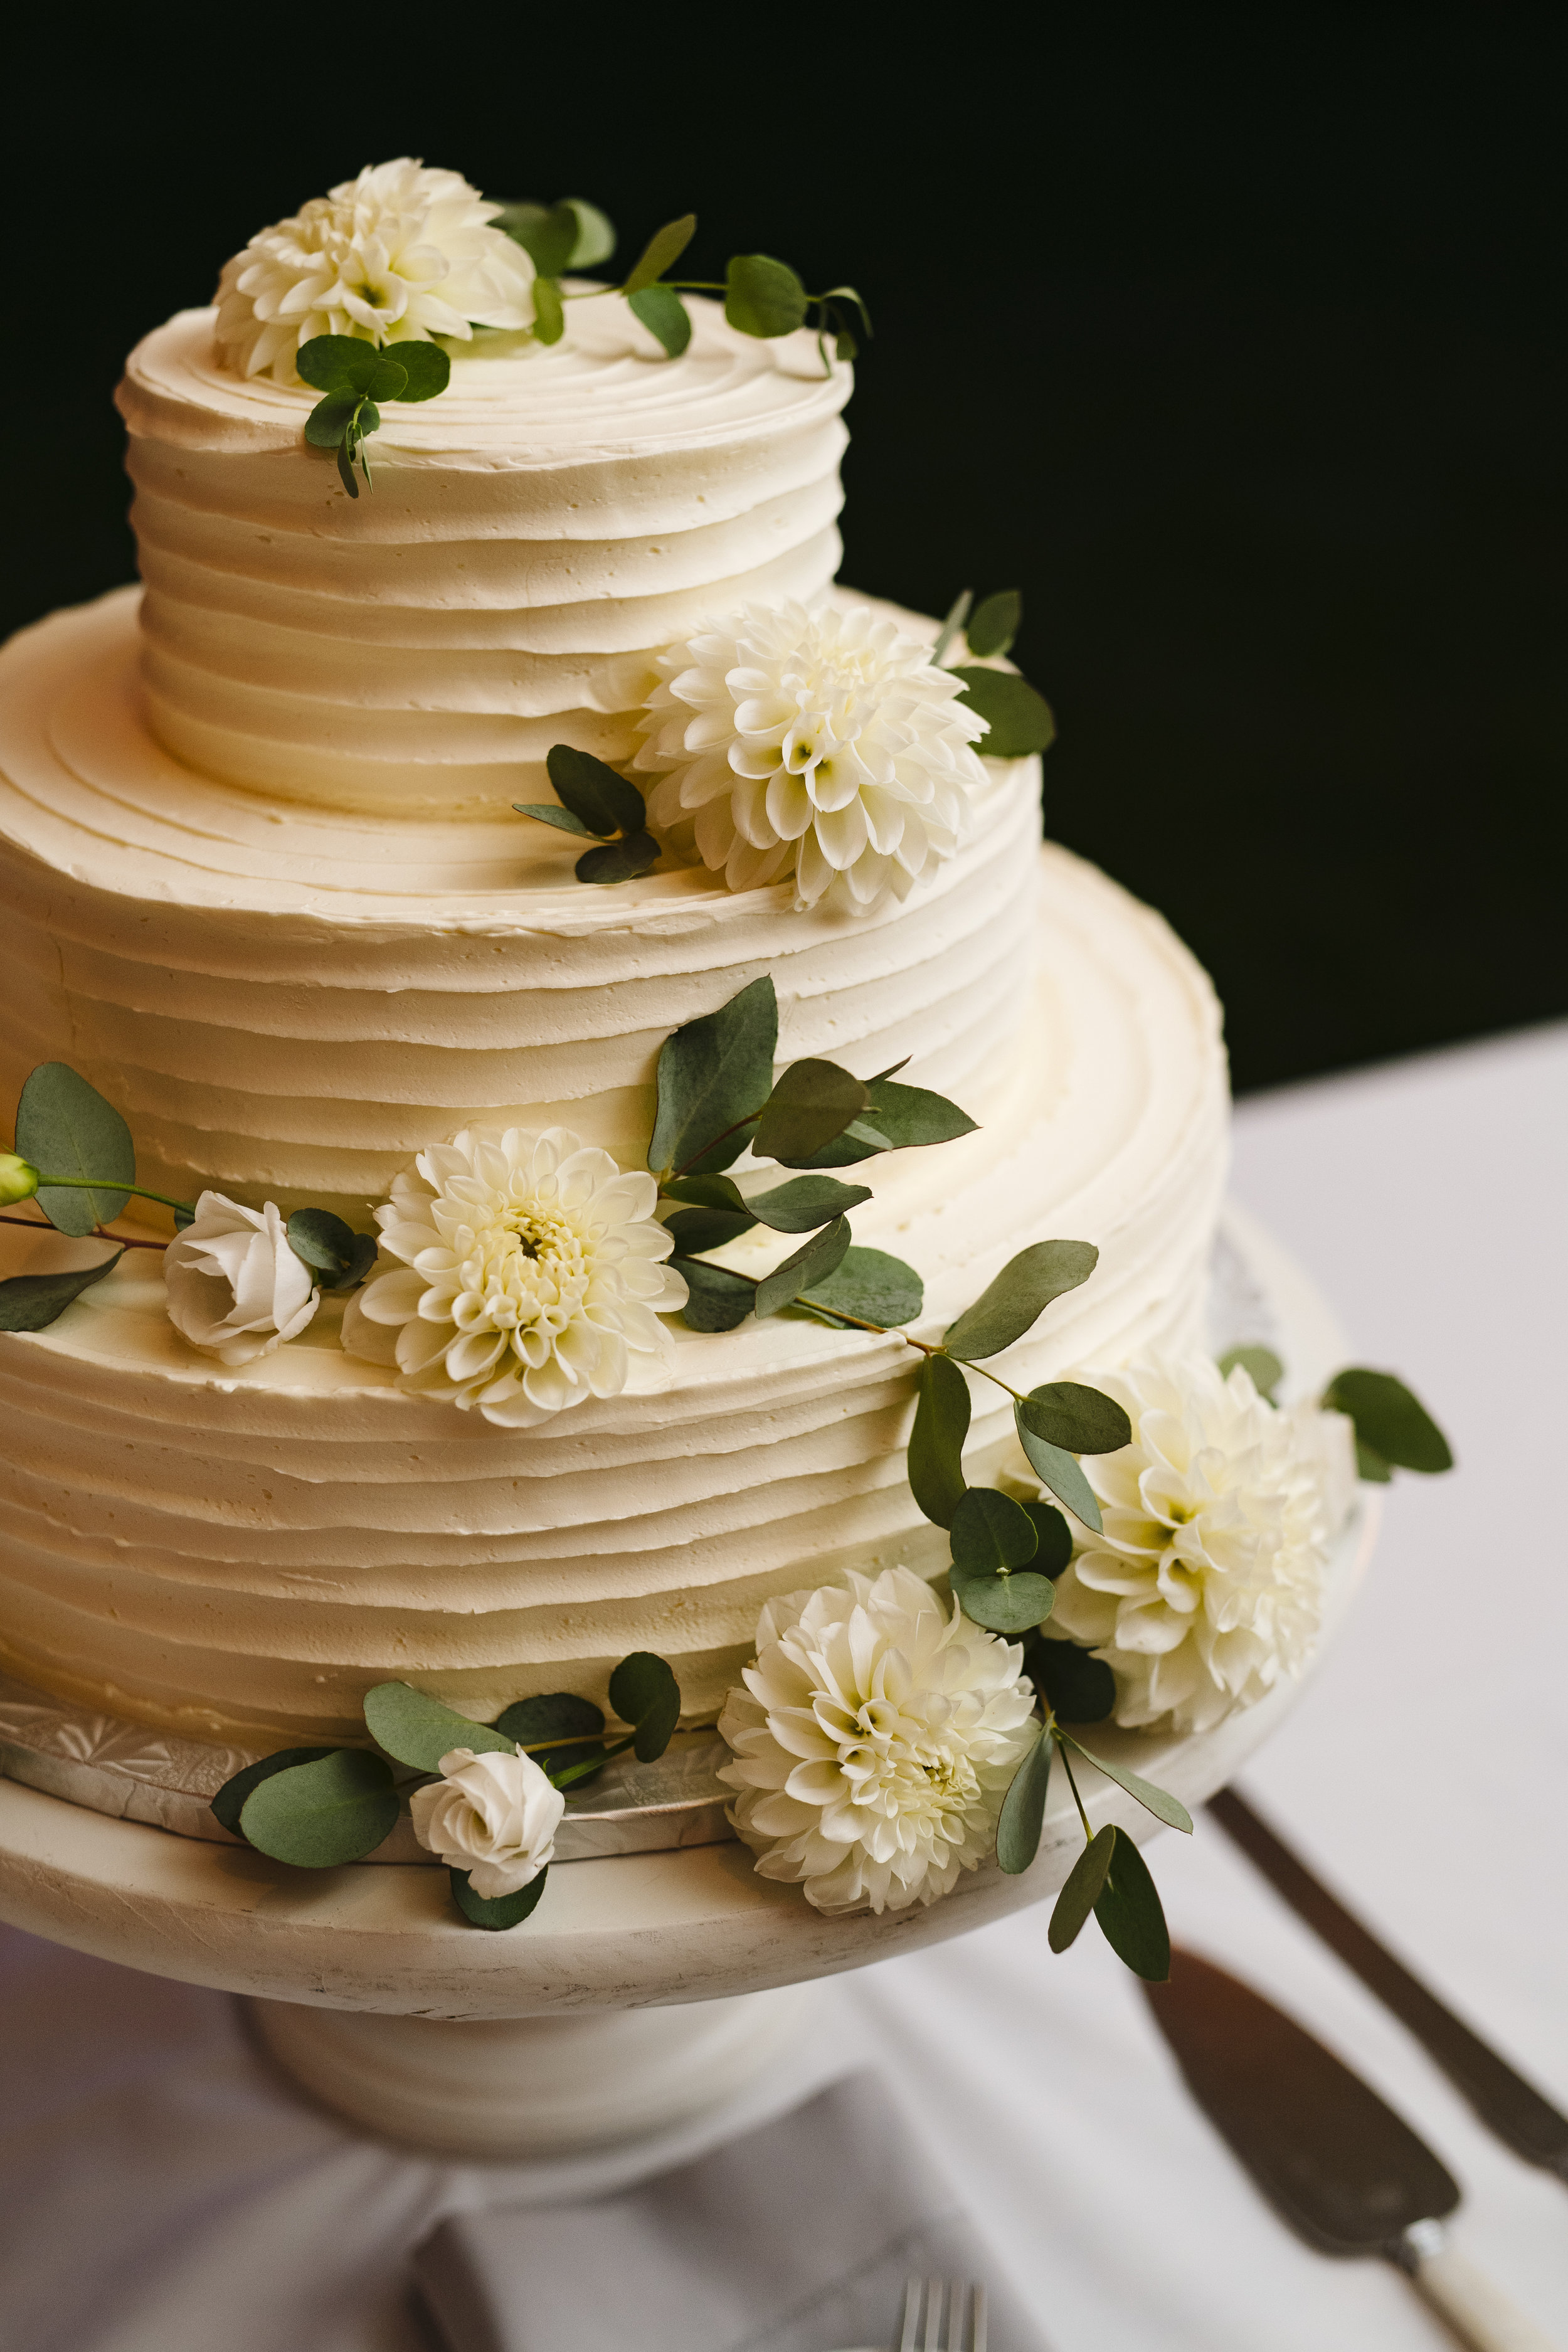 Tiered buttercream cake by A Thyme To Cook with Brambles and Bittersweet flowers at Jonathan Edwards Winery in Connecticut - Pearl Weddings & Events